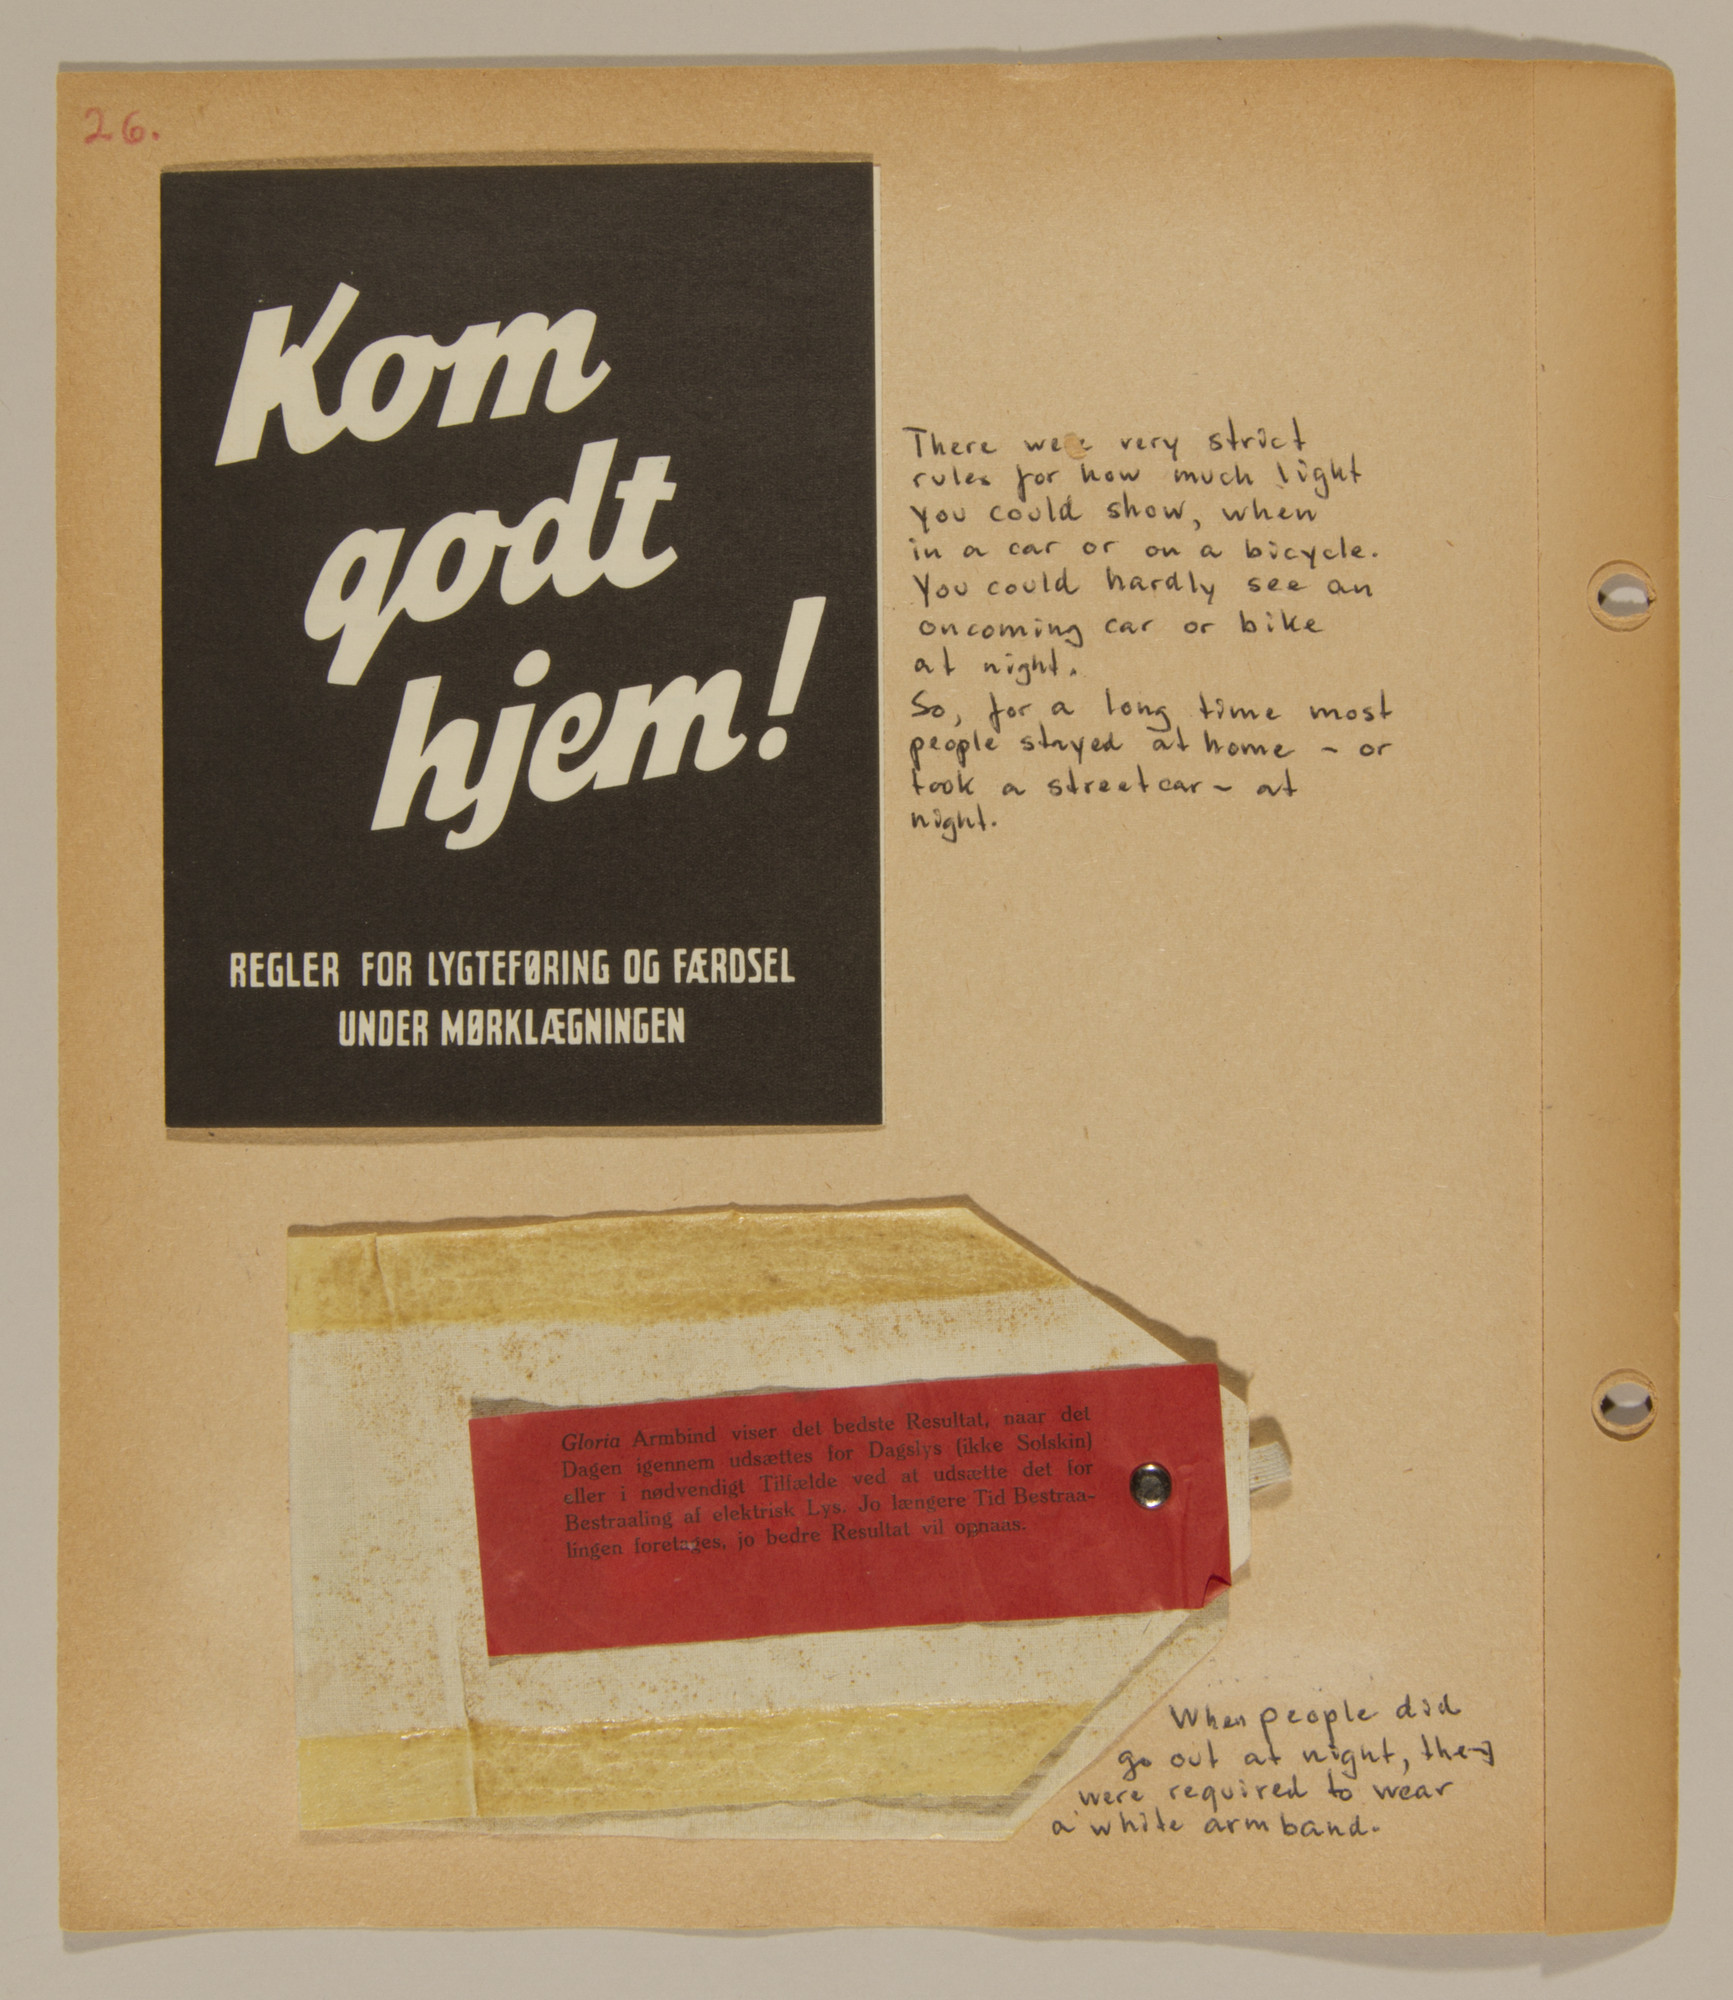 Page from volume one of a set of scrapbooks compiled by Bjorn Sibbern, a Danish policeman and resistance member, documenting the German occupation of Denmark.  This page contains an armband allowing someone to go out after curfew.